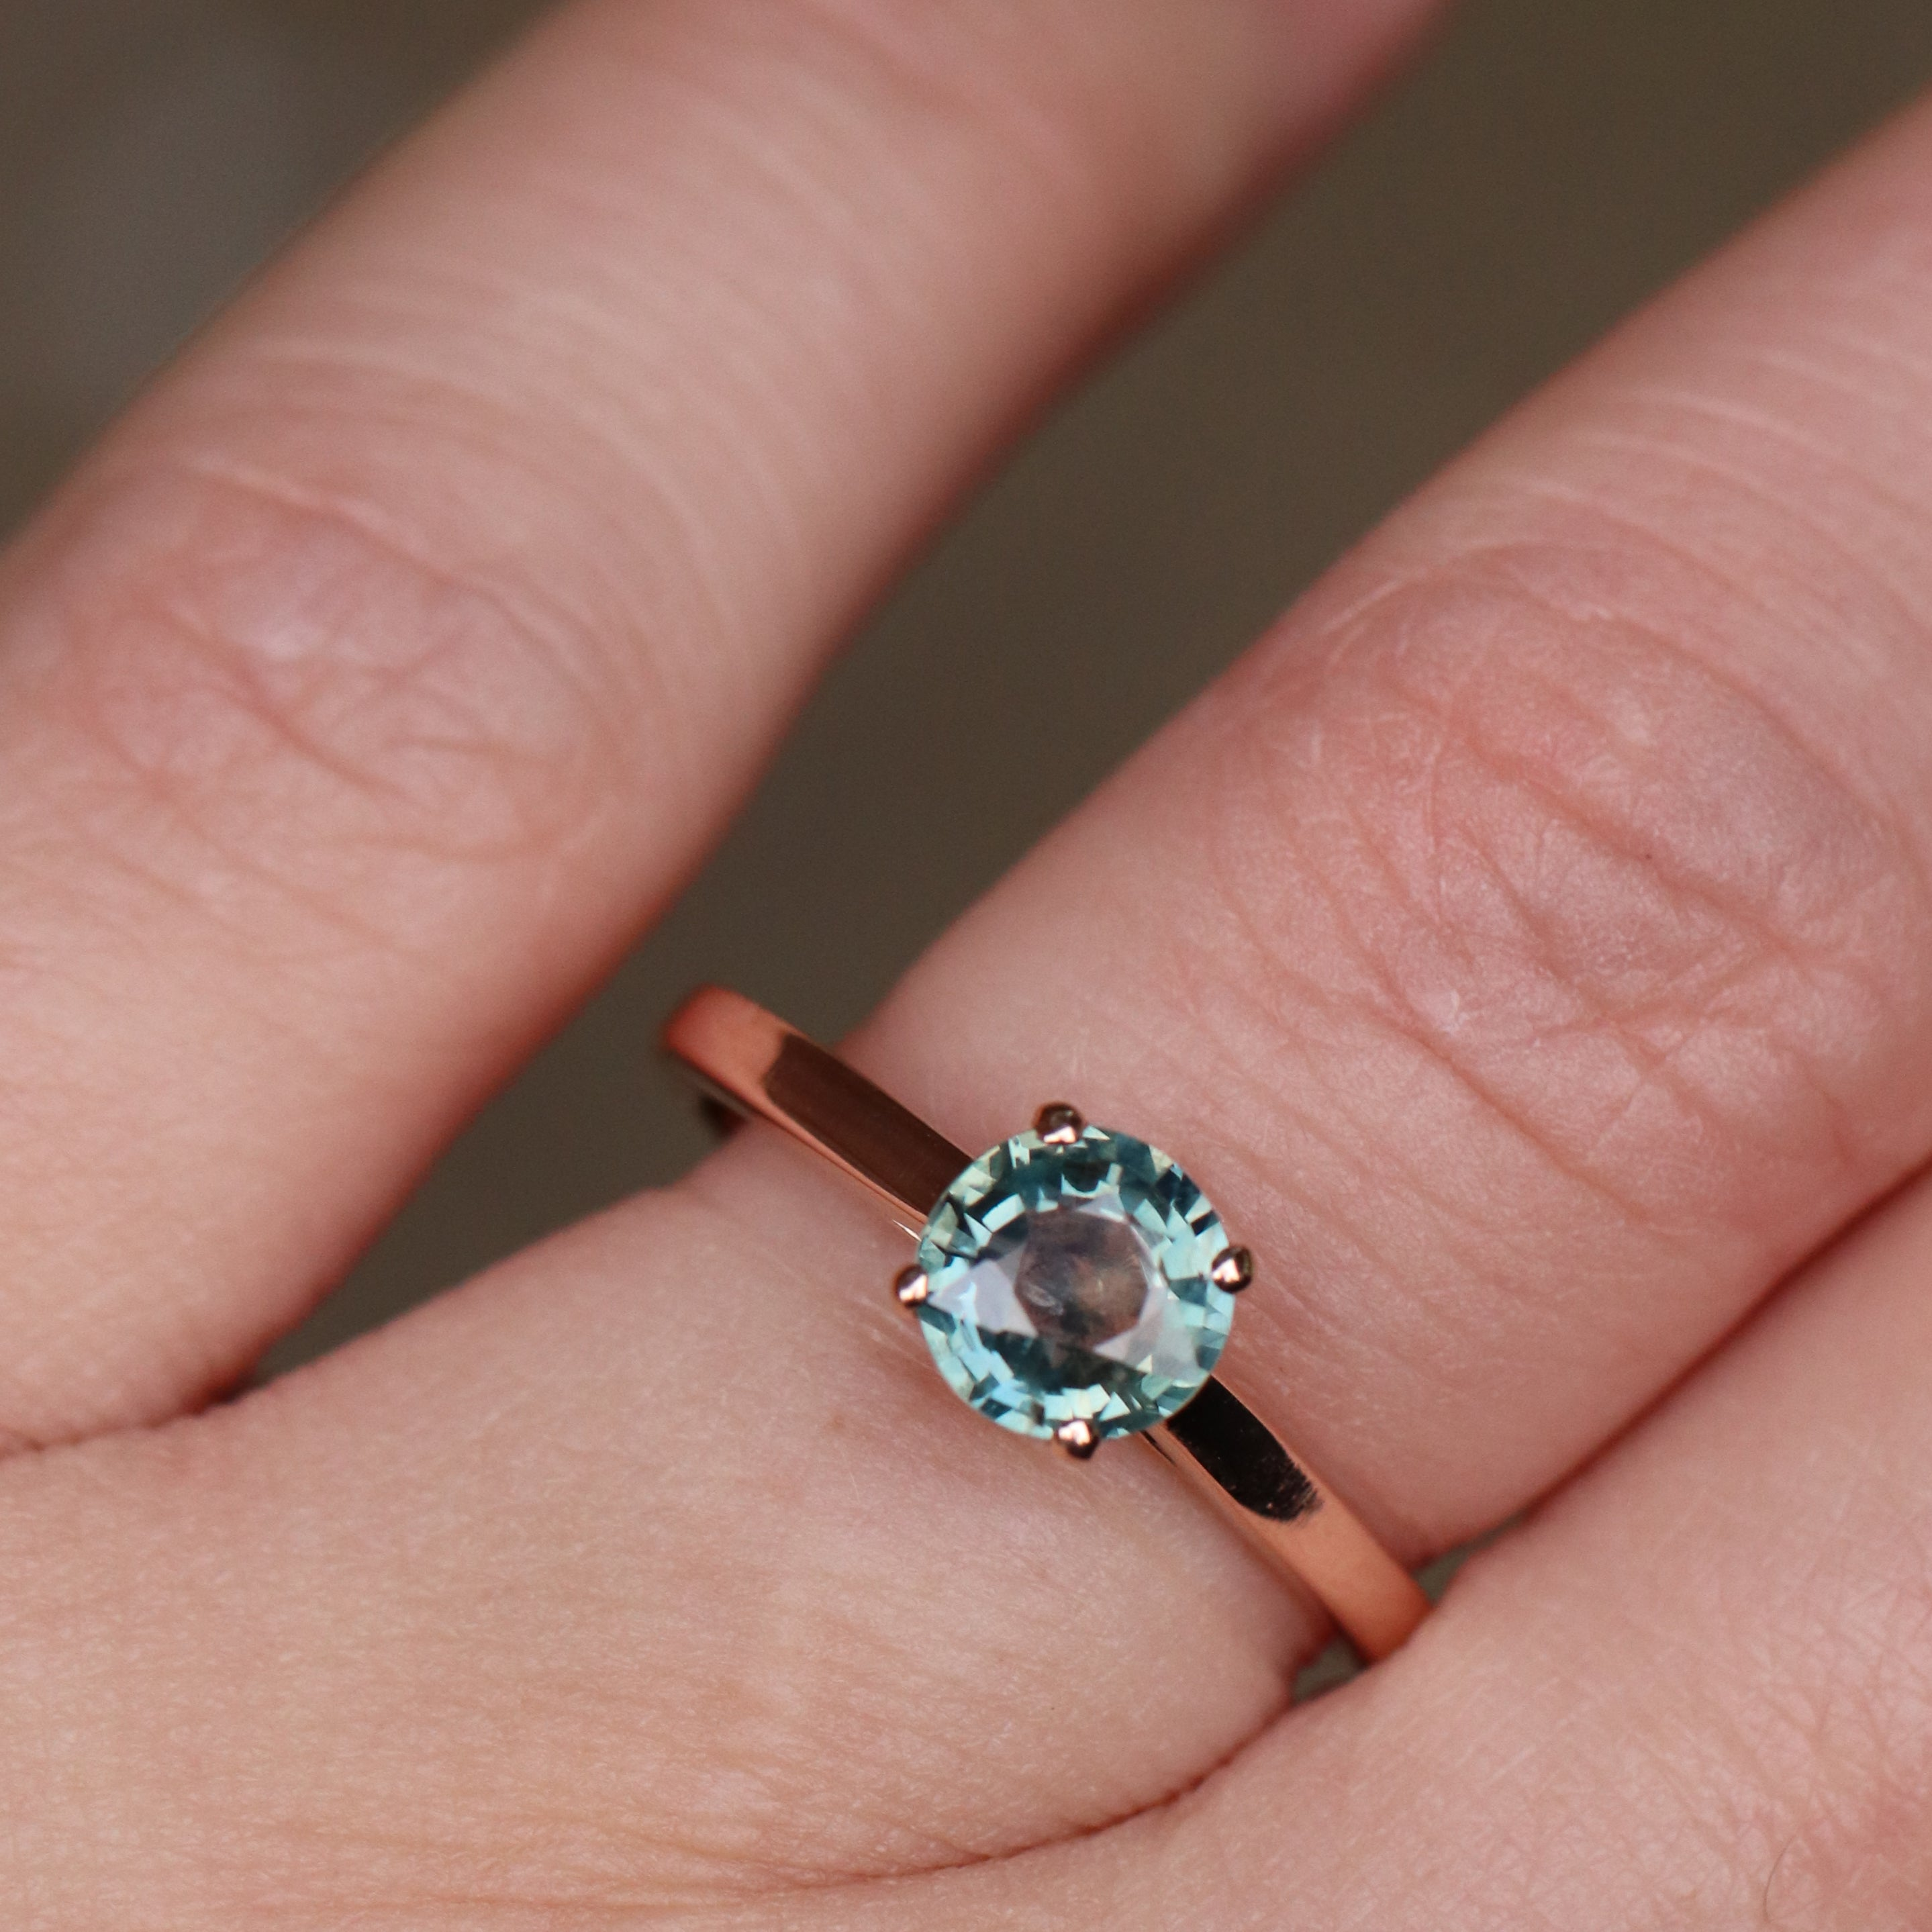 samantha - Charlie Ring with a Teal Sapphire and Hidden Black Diamonds in 14k Rose Gold - Ready to Size and Ship - Salt & Pepper Celestial Diamond Engagement Rings and Wedding Bands  by Midwinter Co.